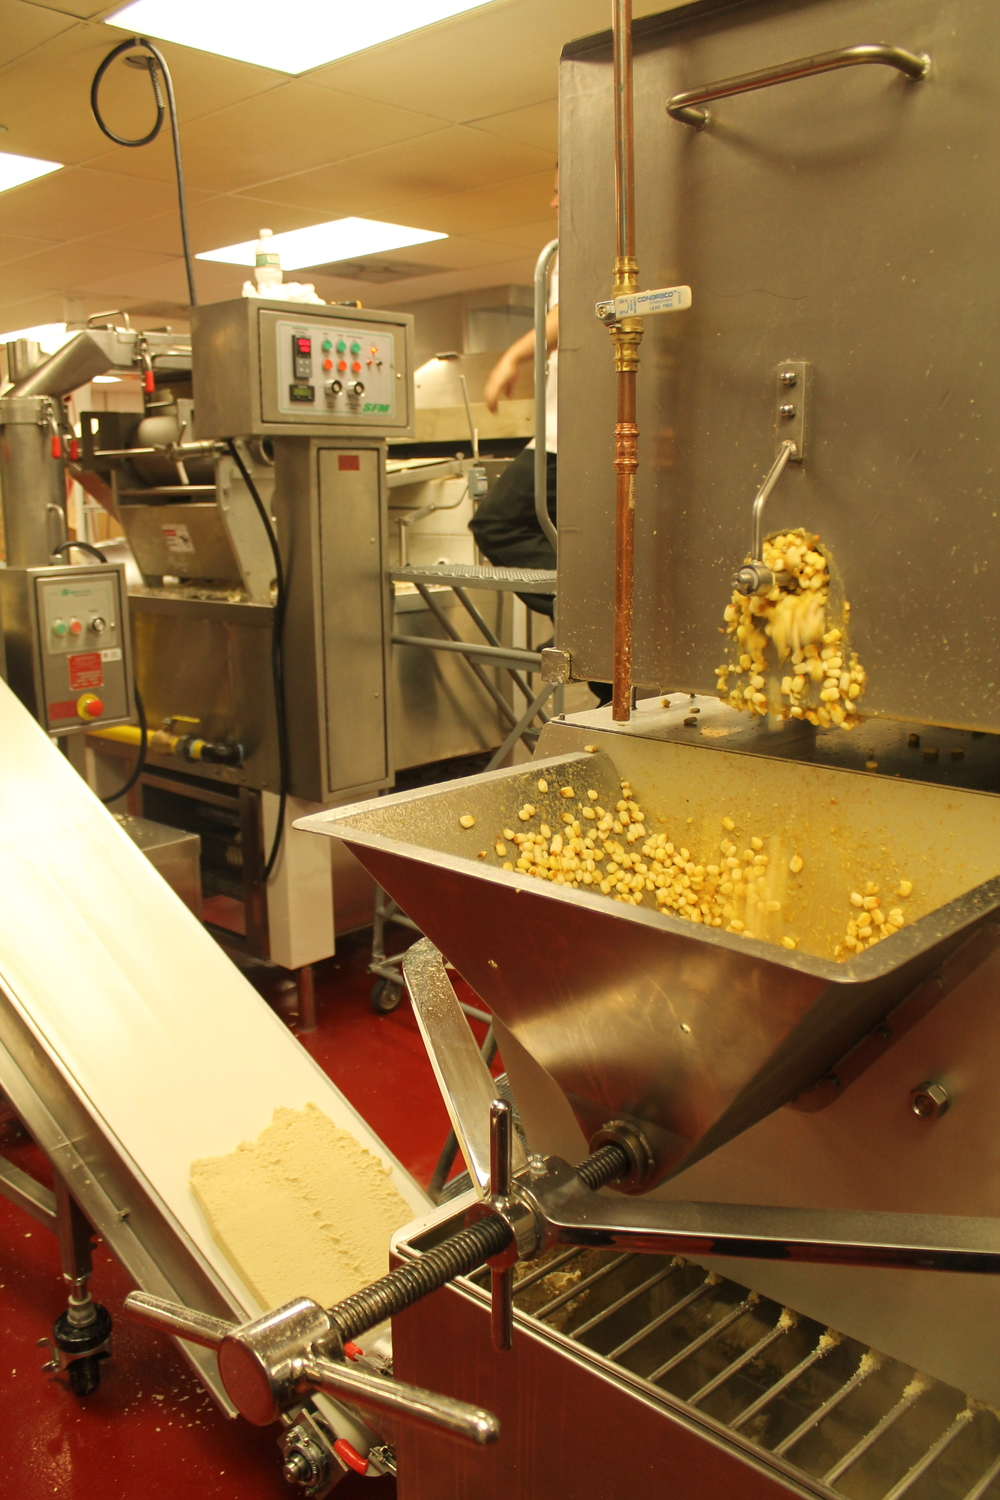 The corn is ground into masa.